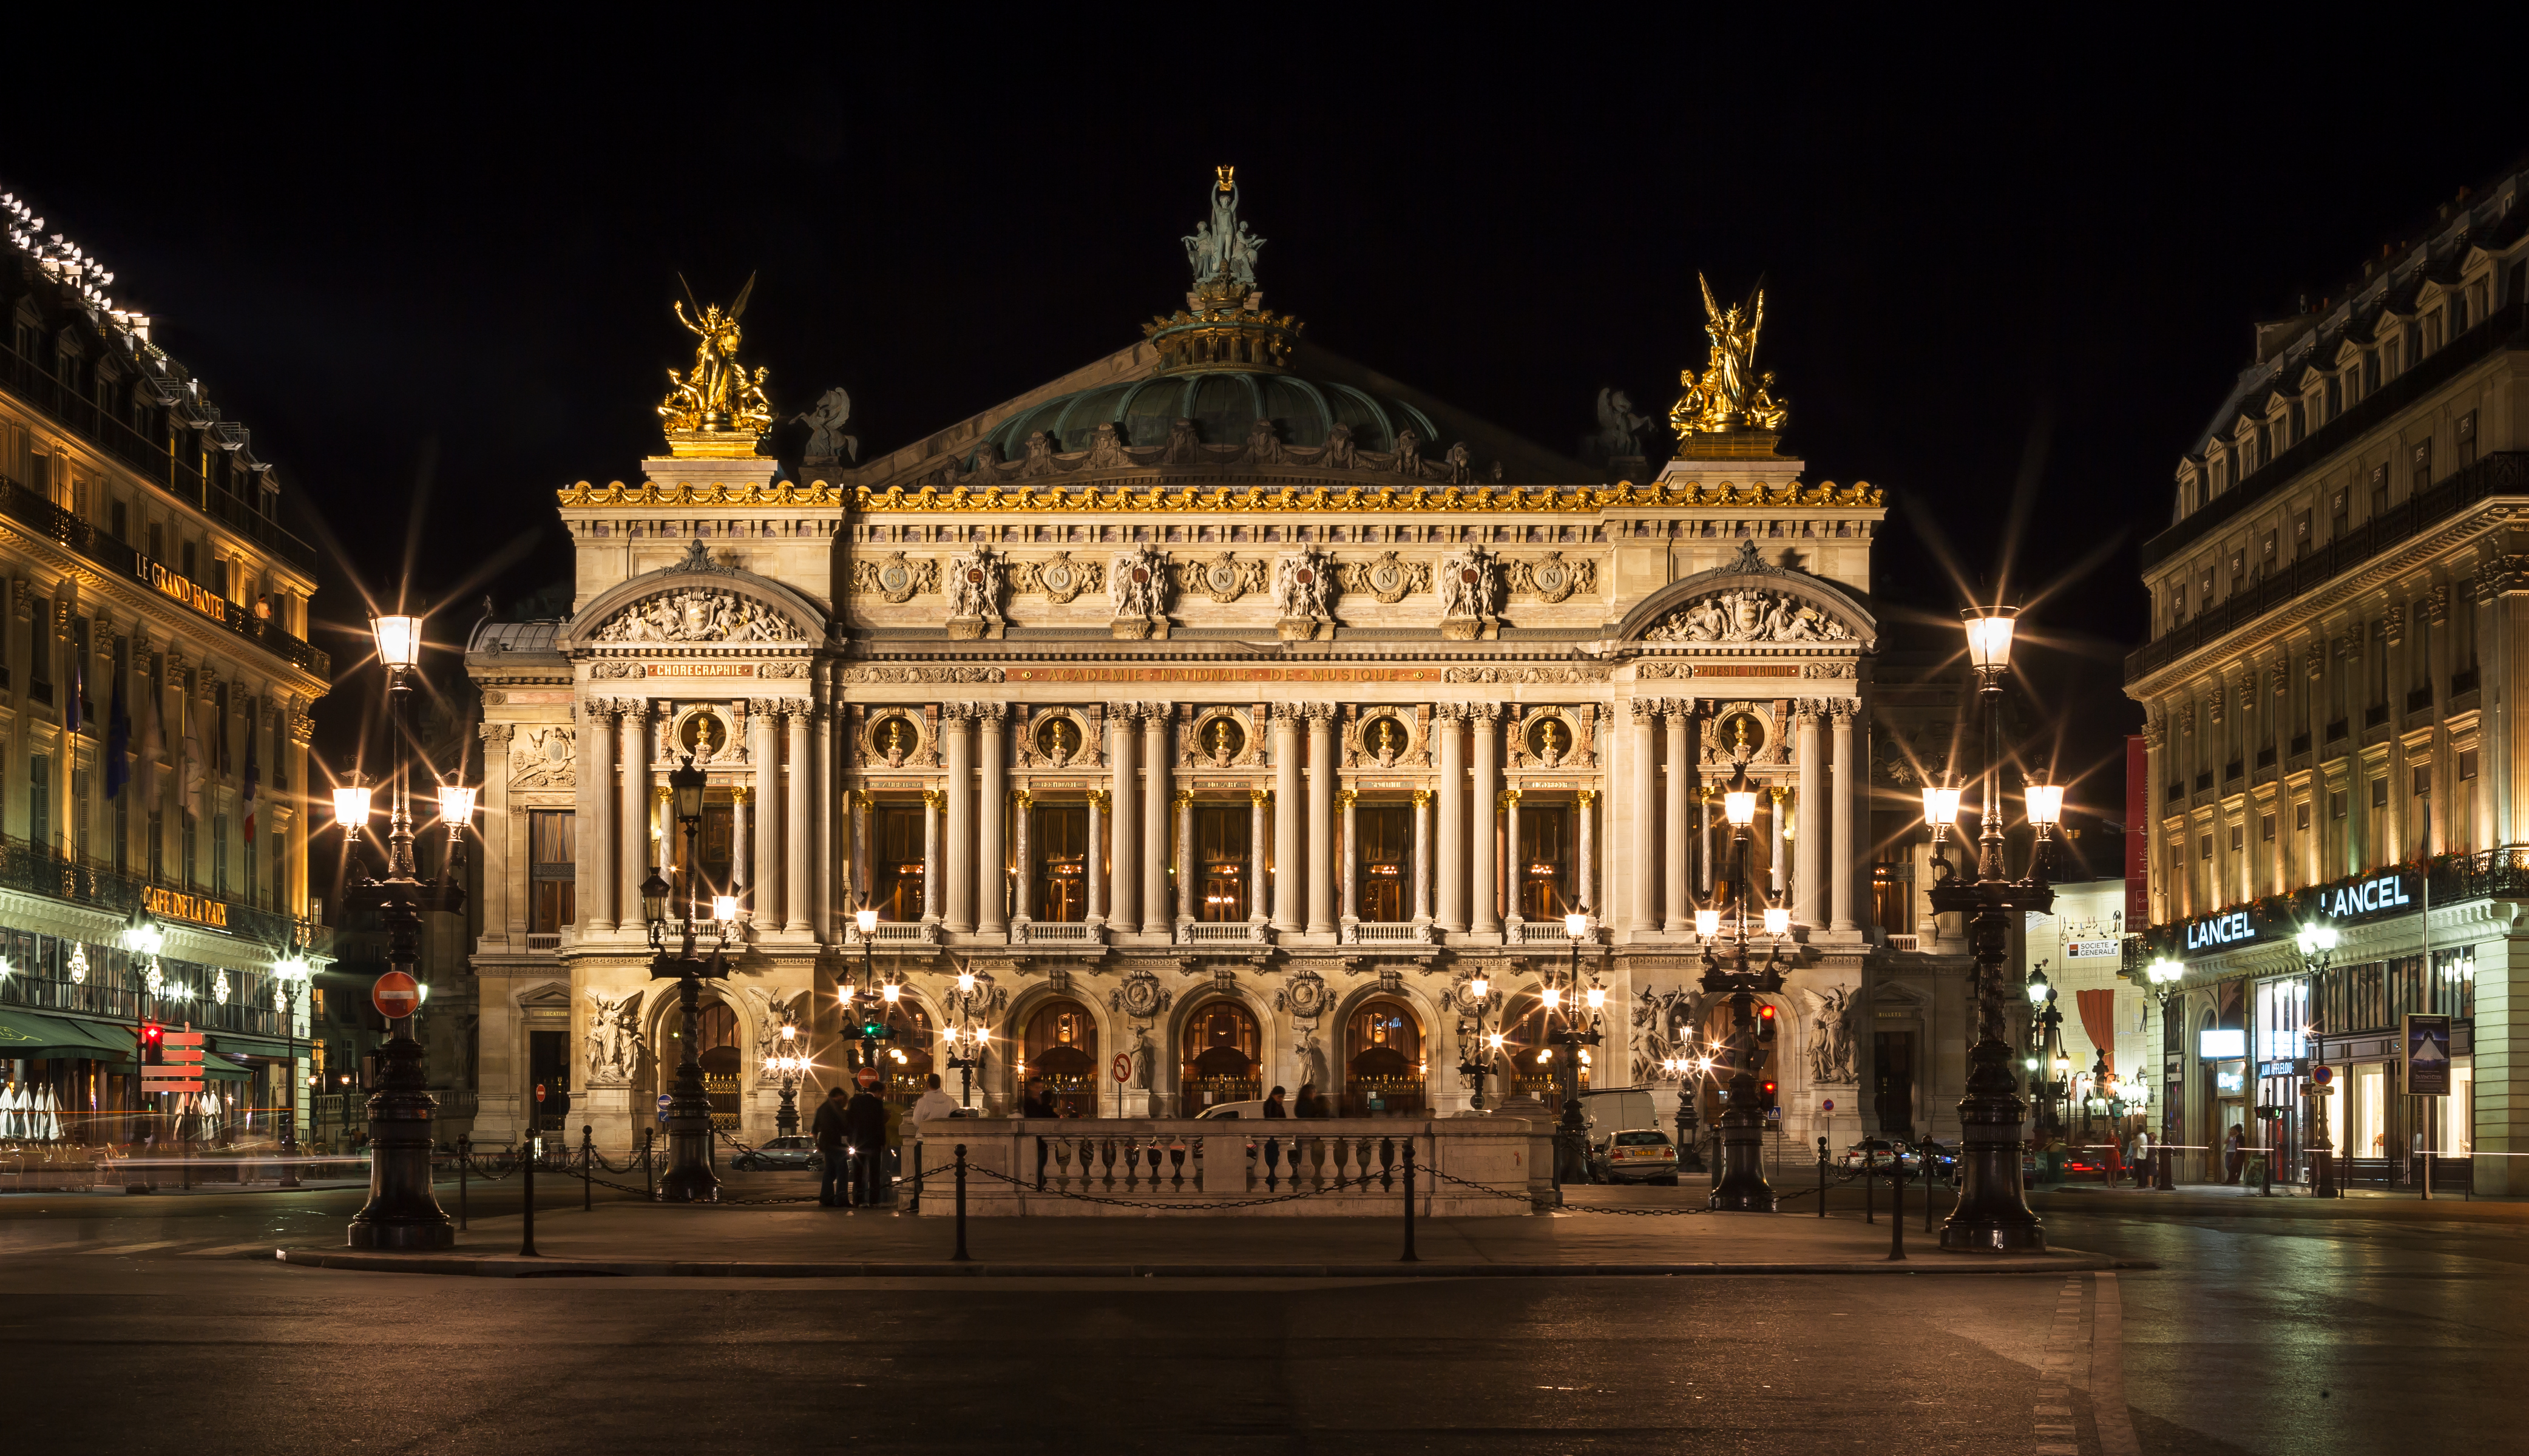 Arte Concert Opera De Paris Cheap Tickets To Classical Concerts In Paris Classique Mais Pas